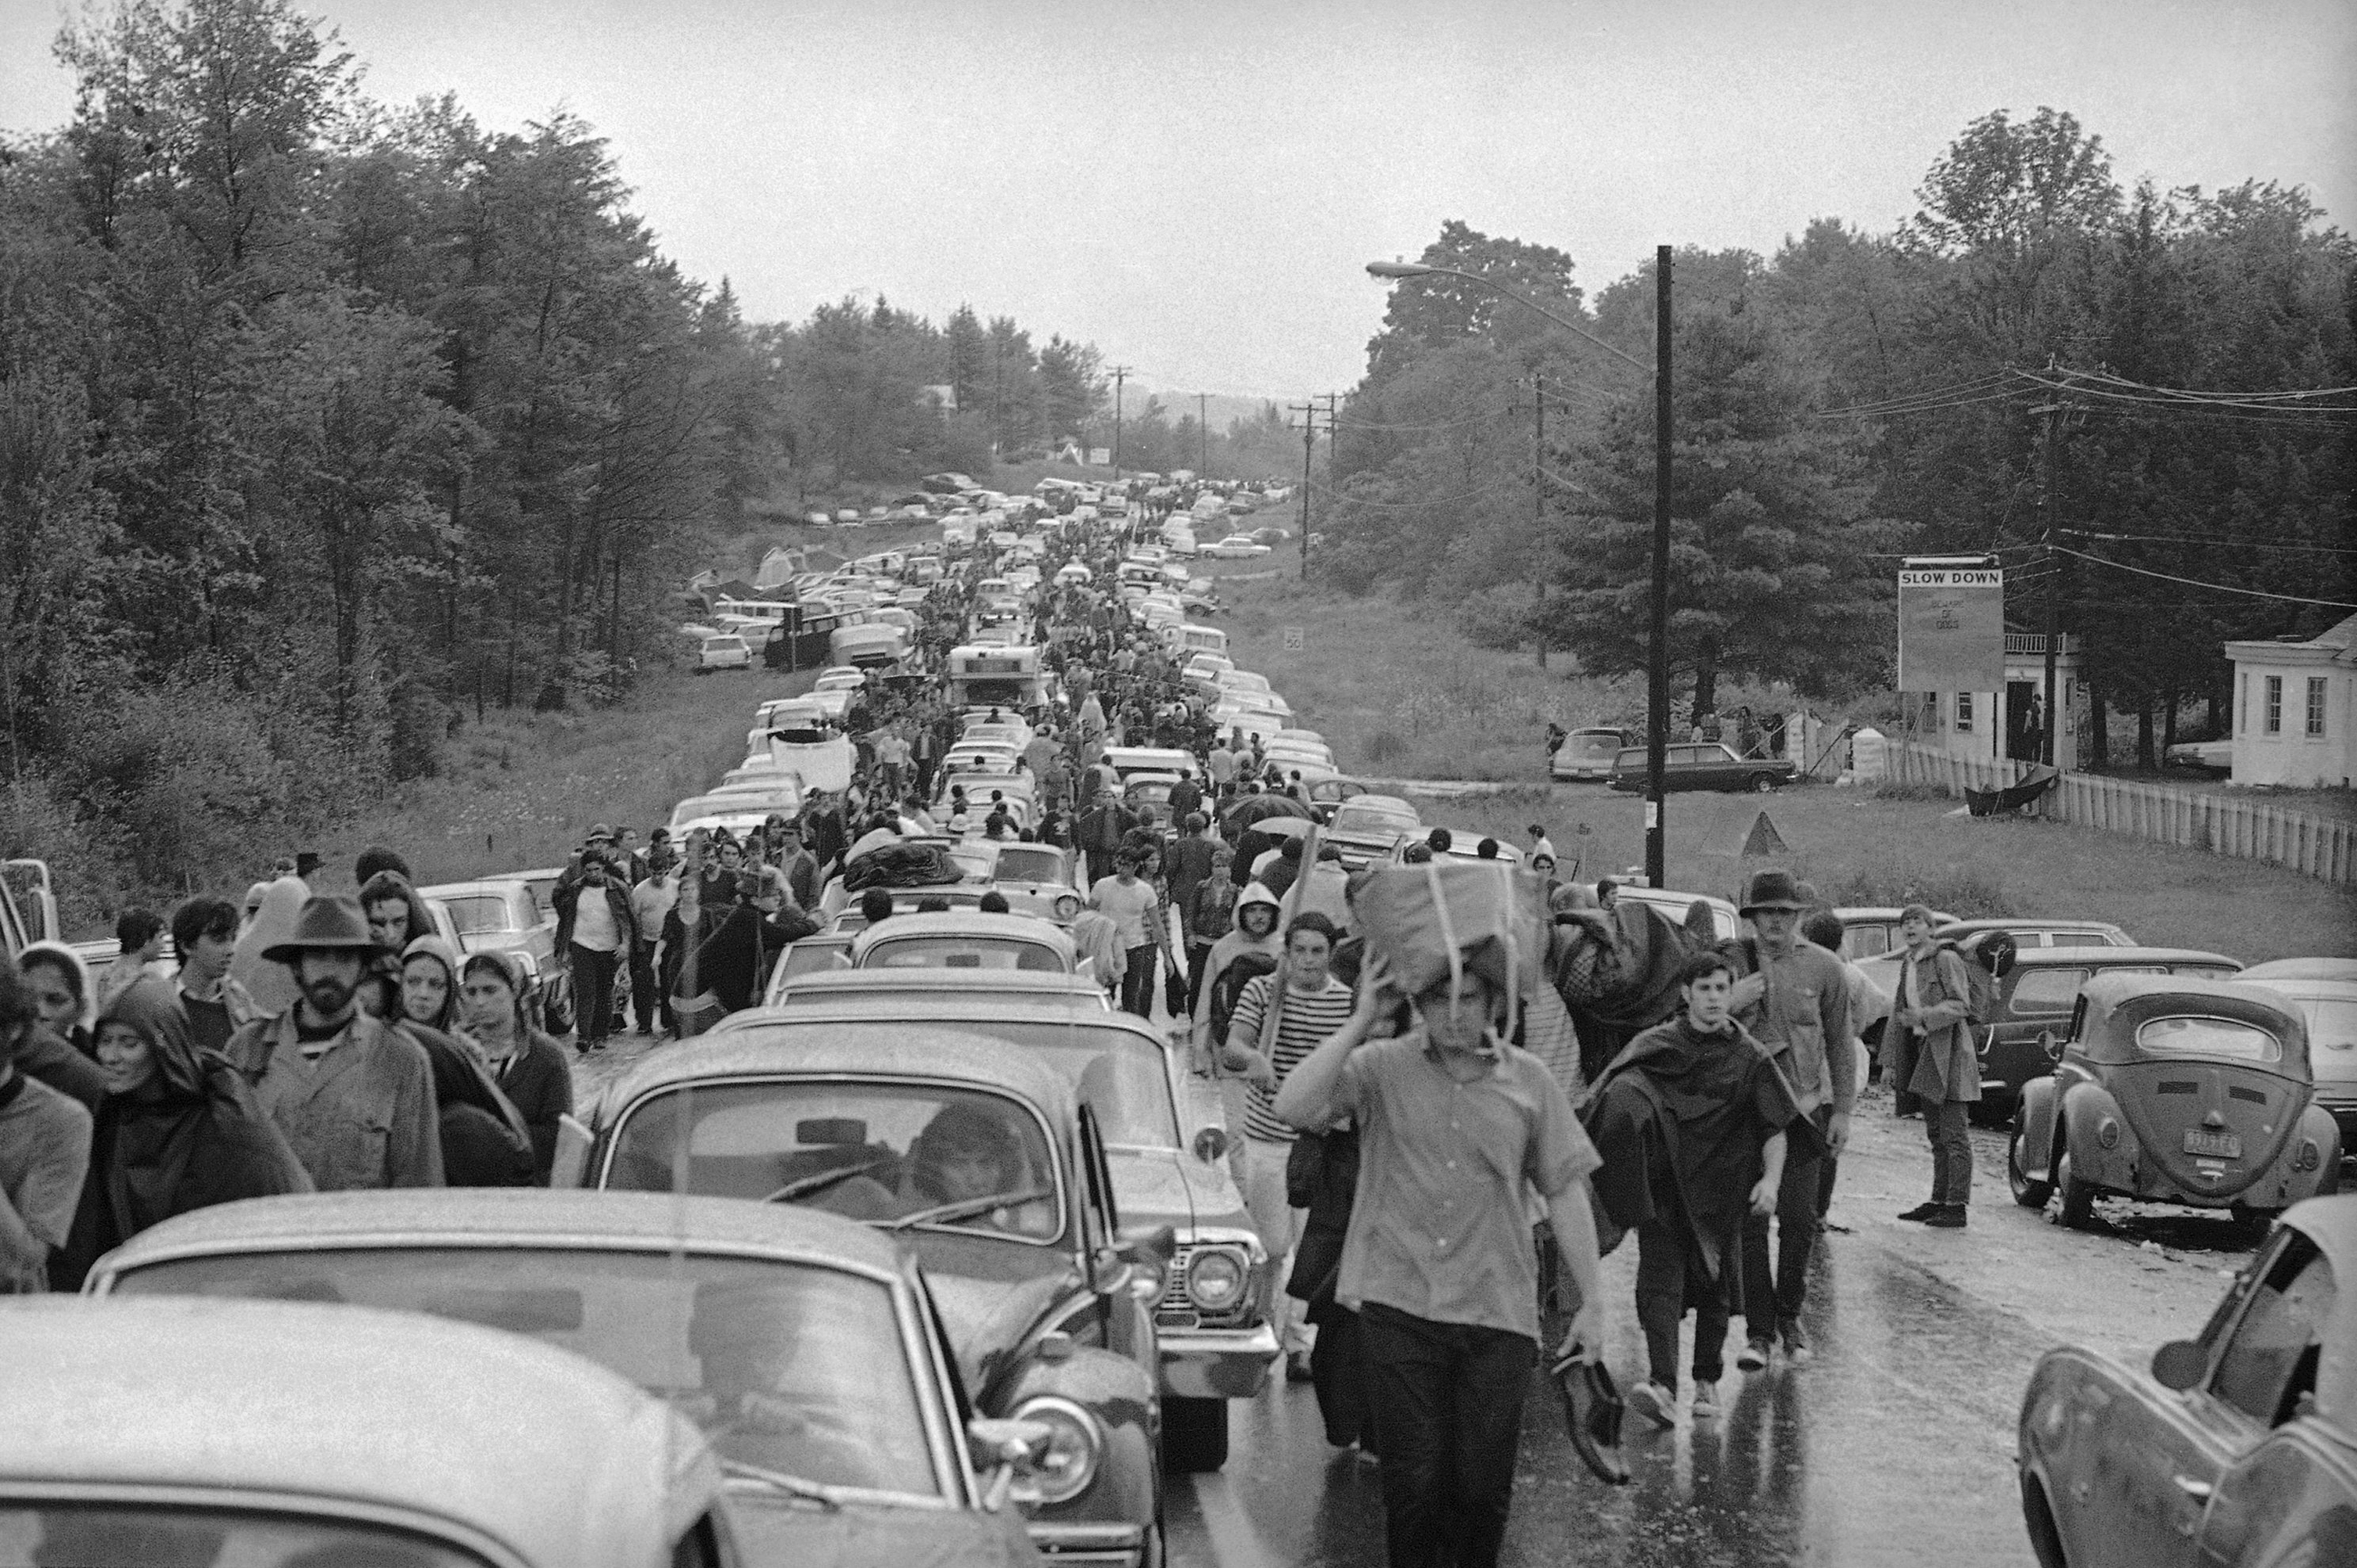 Caption: Hundreds of rock music fans jam highway leading from Bethel, New York, Aug. 16, 1969 as they try to leave the Woodstock Music and Art Festival.(AP Photo)